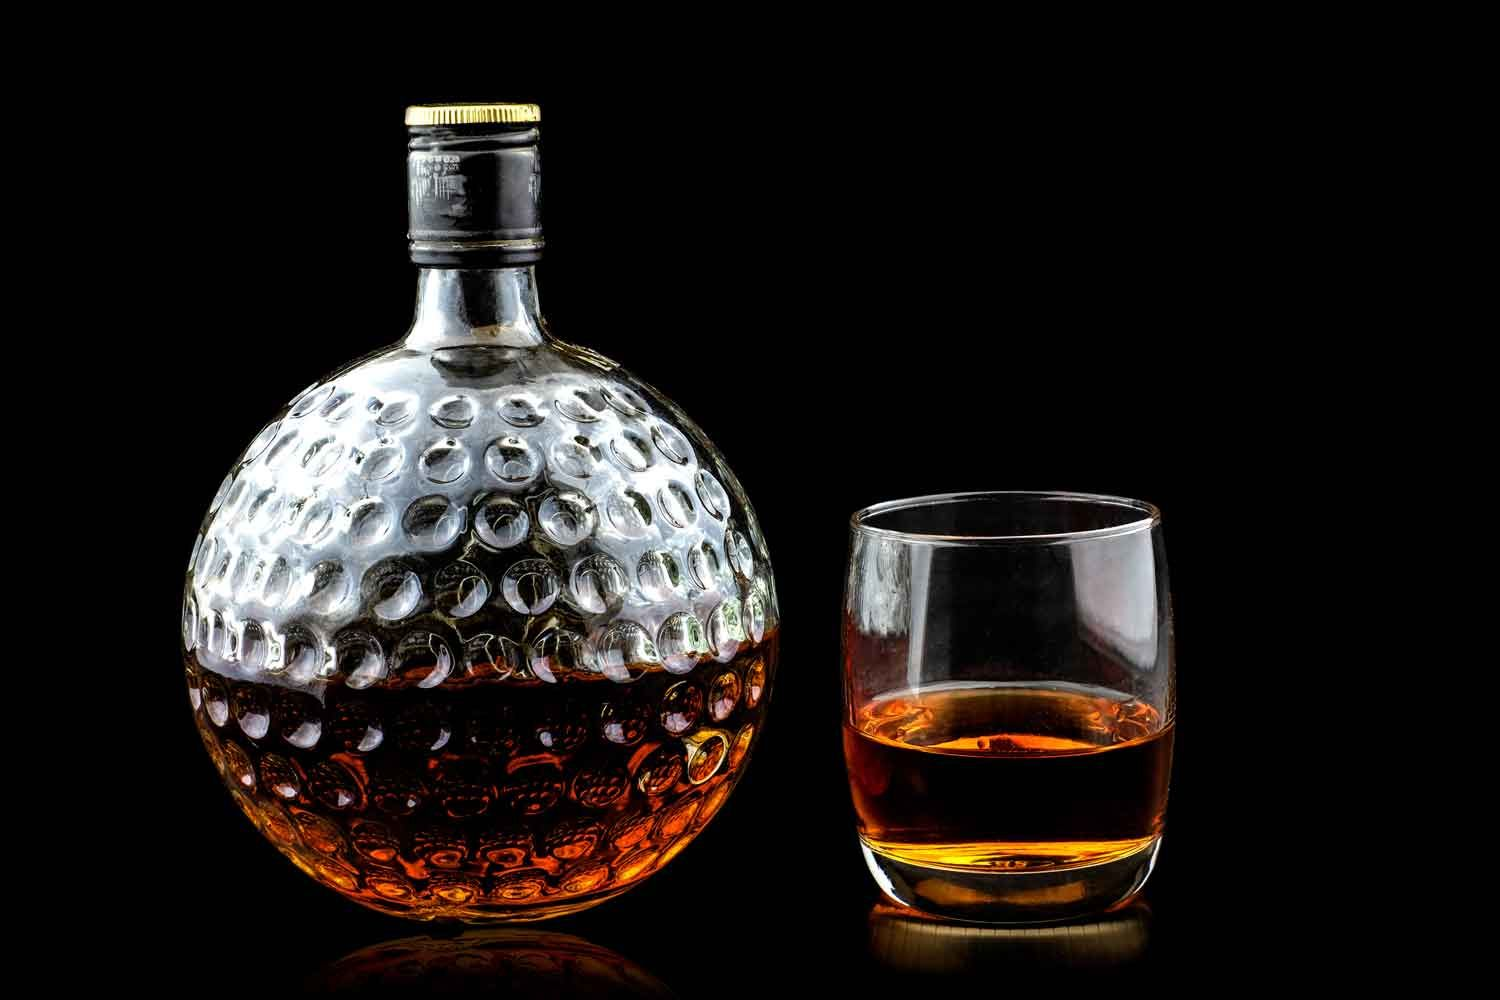 Heres how to actually taste whisky and appreciate it like